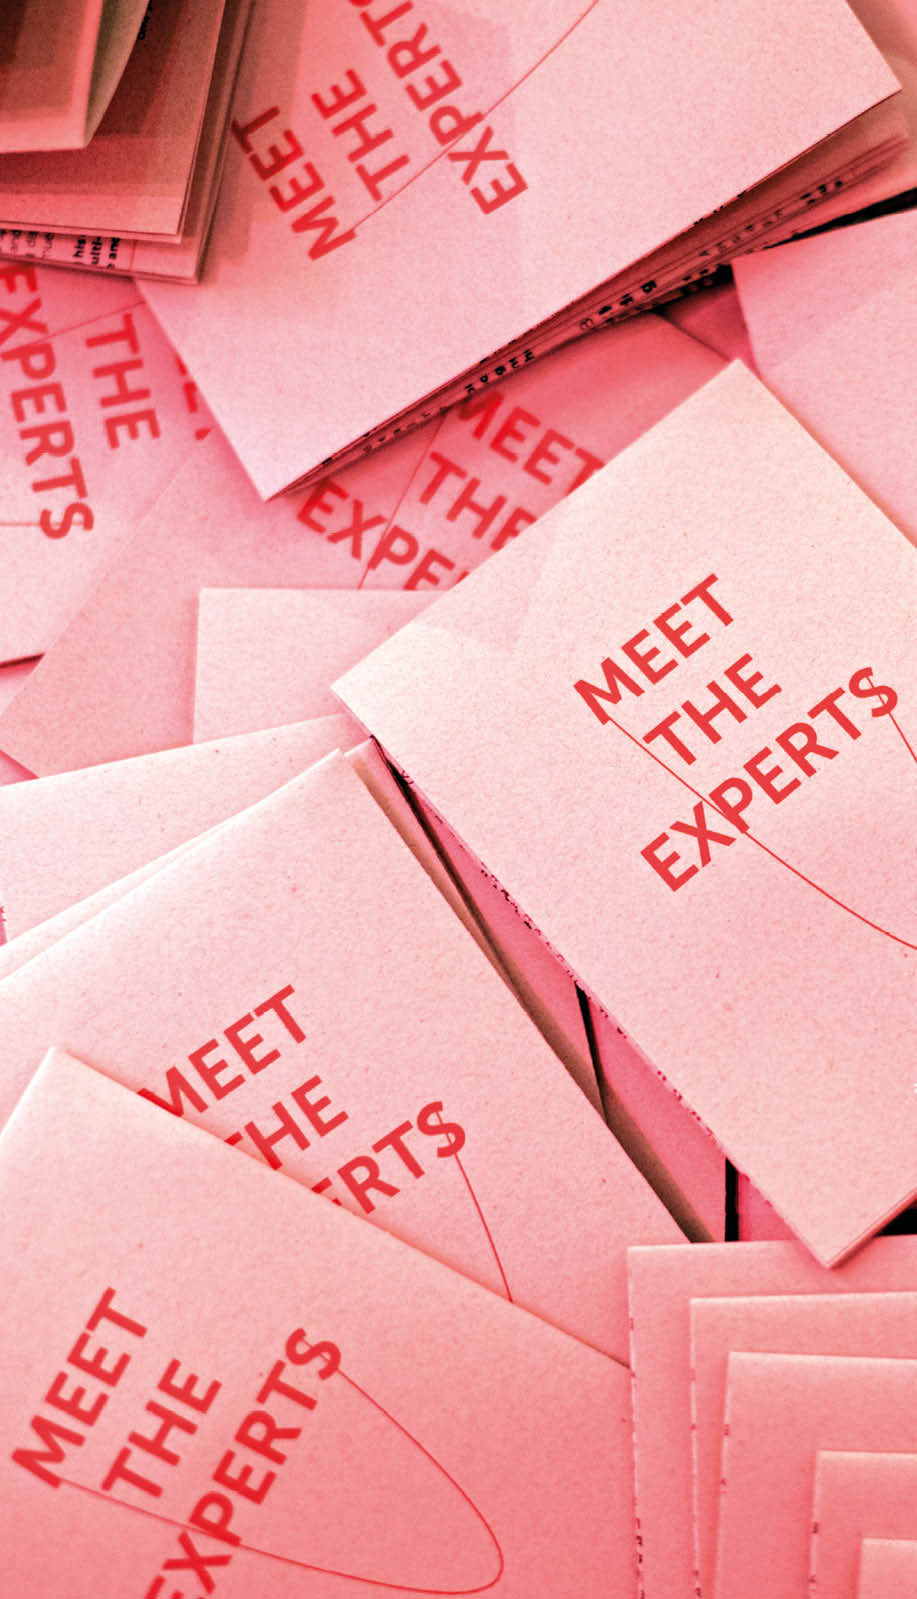 meet_the_experts_03